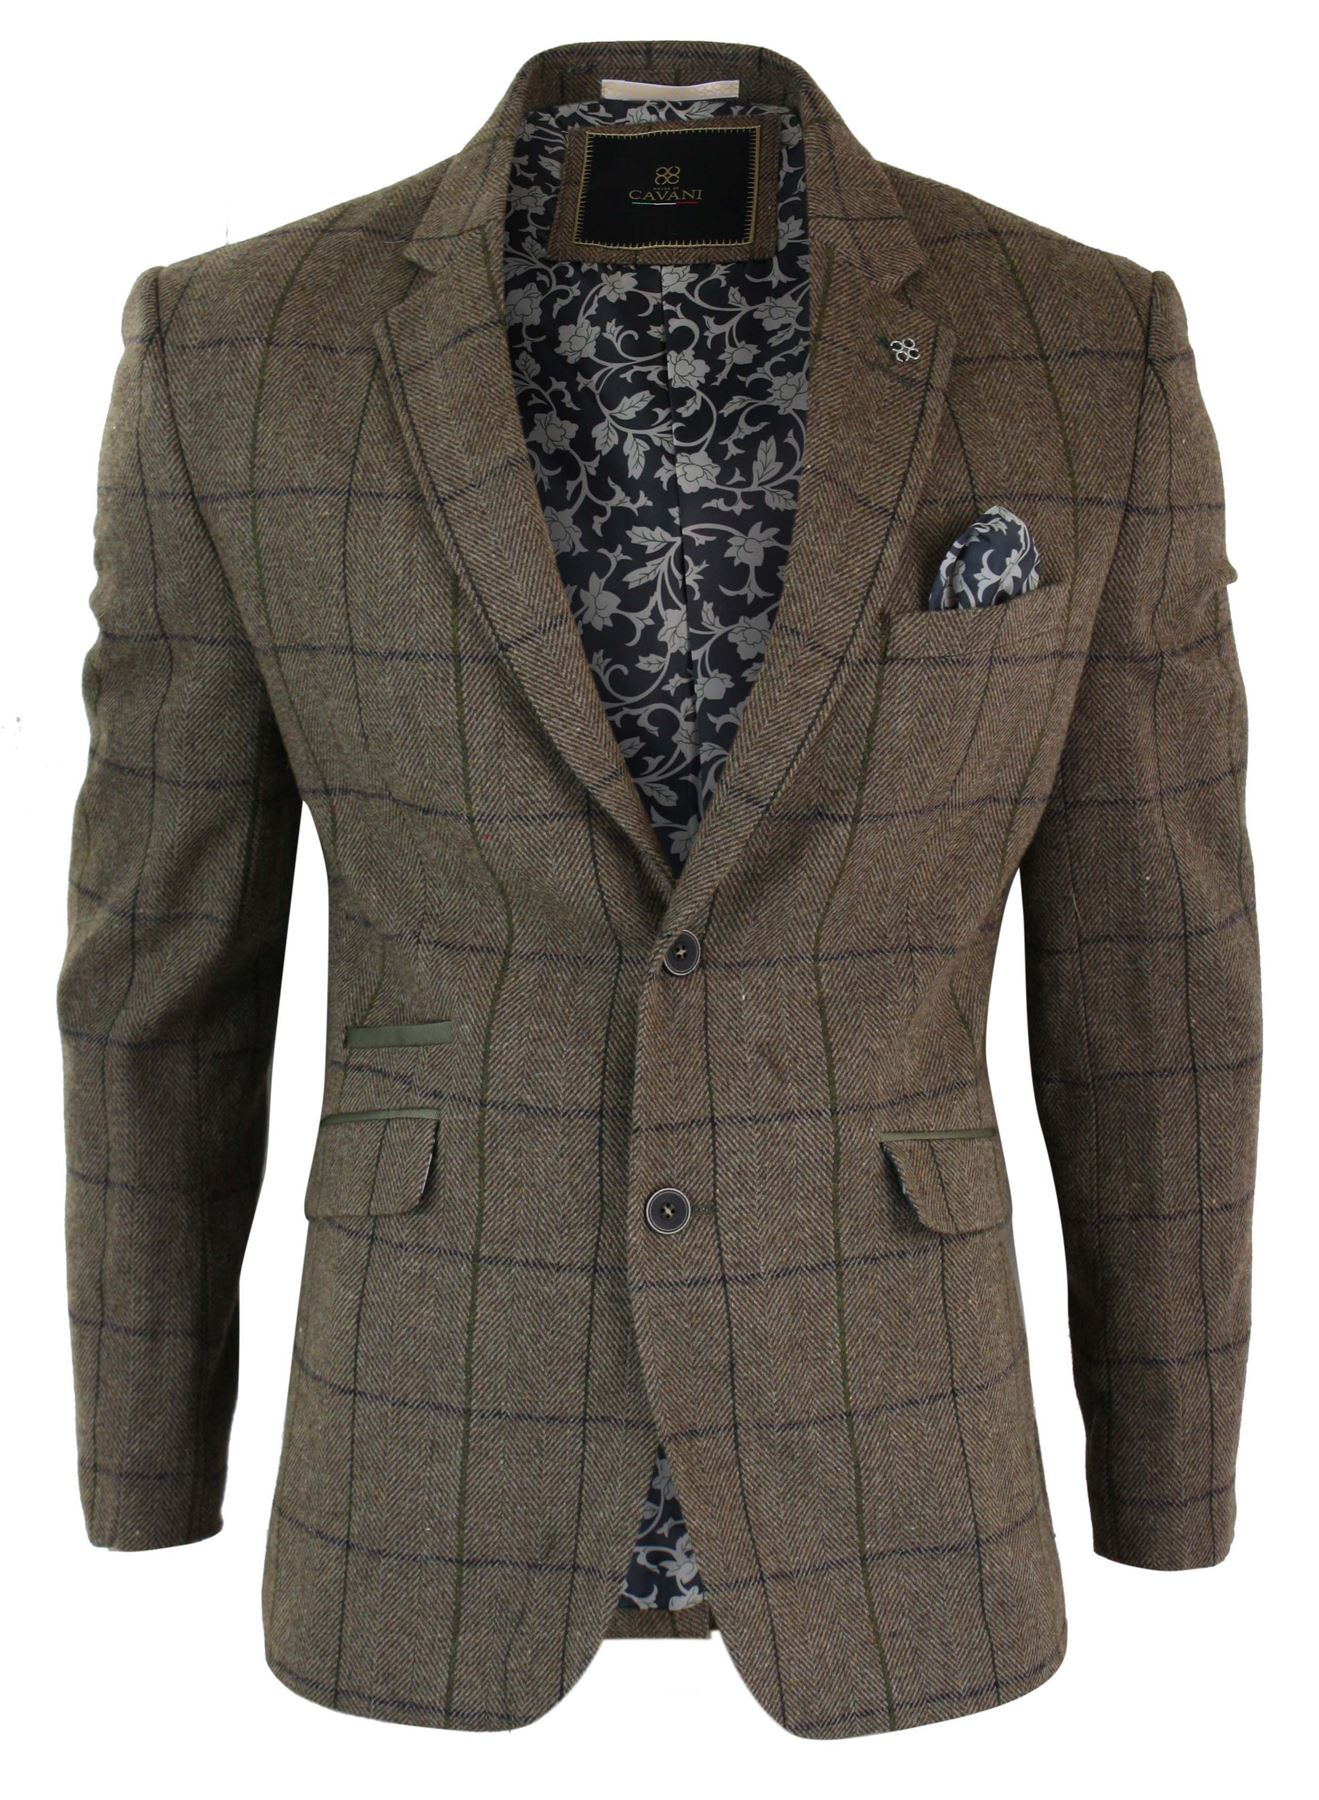 Veste homme tweed chevrons brown vintage carreaux blue marine blazer